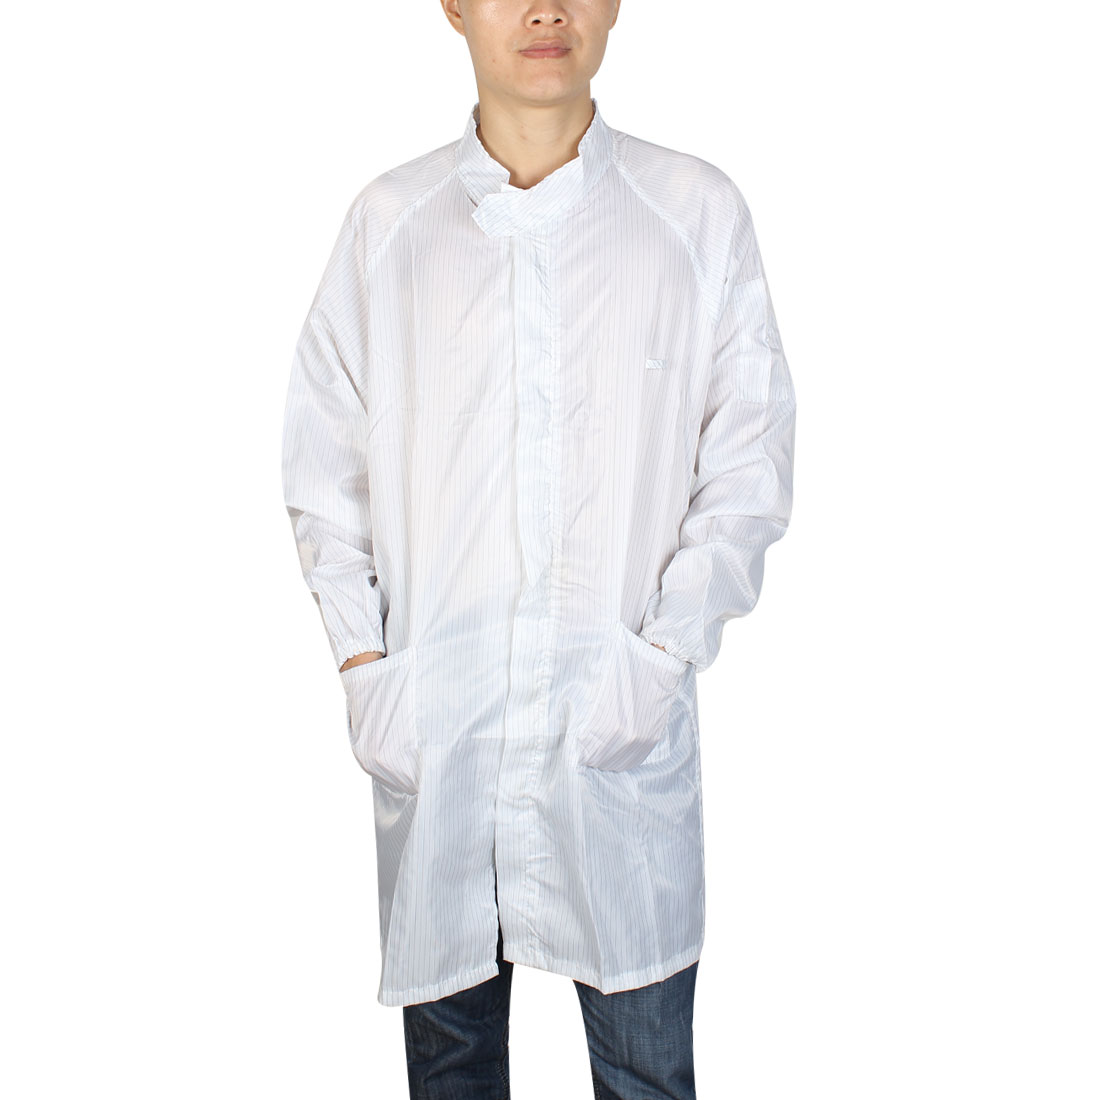 Women Men Loose Workwear Uniform ESD Lab Anti Static Overalls Coat White XXL